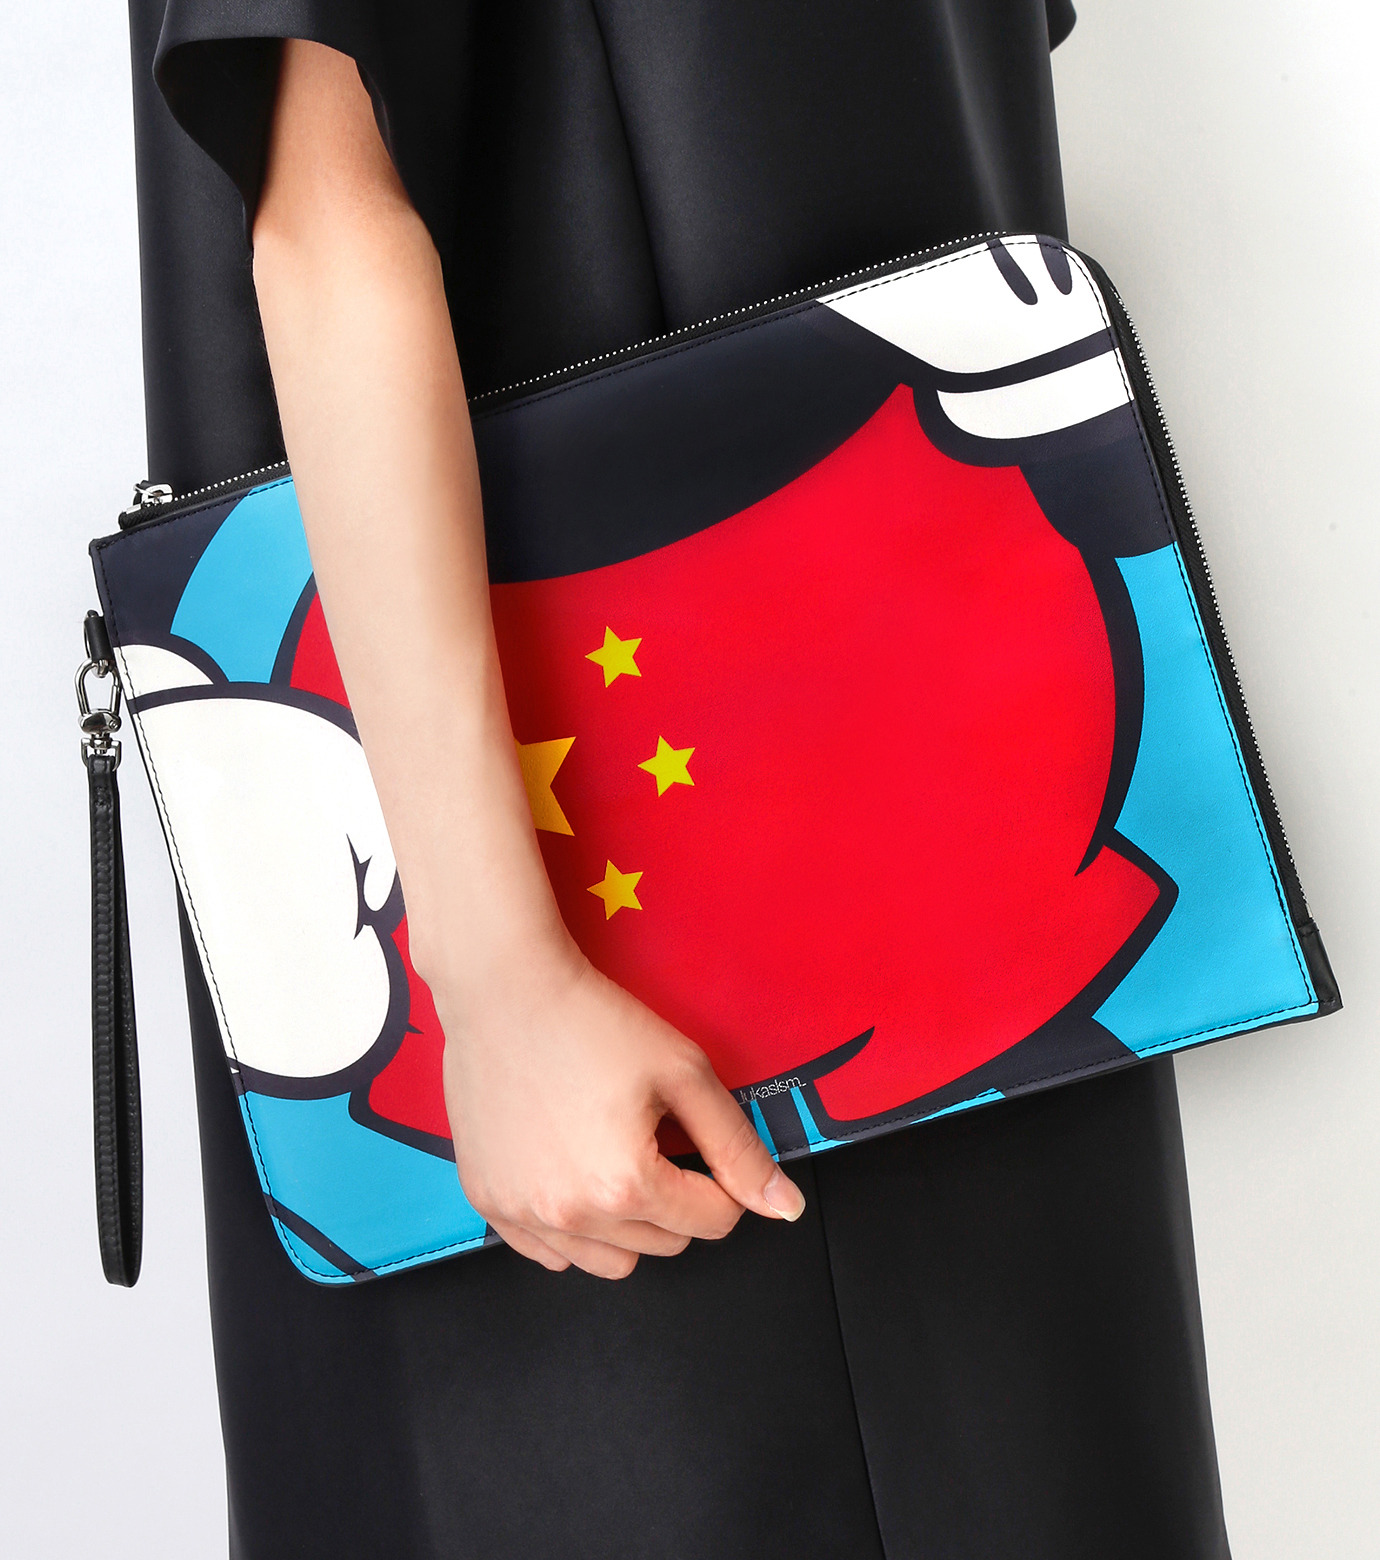 PAPRIKA(パプリカ)のChinese Fancy Pants Cluthbag-MULTI COLOUR(クラッチバッグ/clutch bag)-LKCP-H526-9 拡大詳細画像5